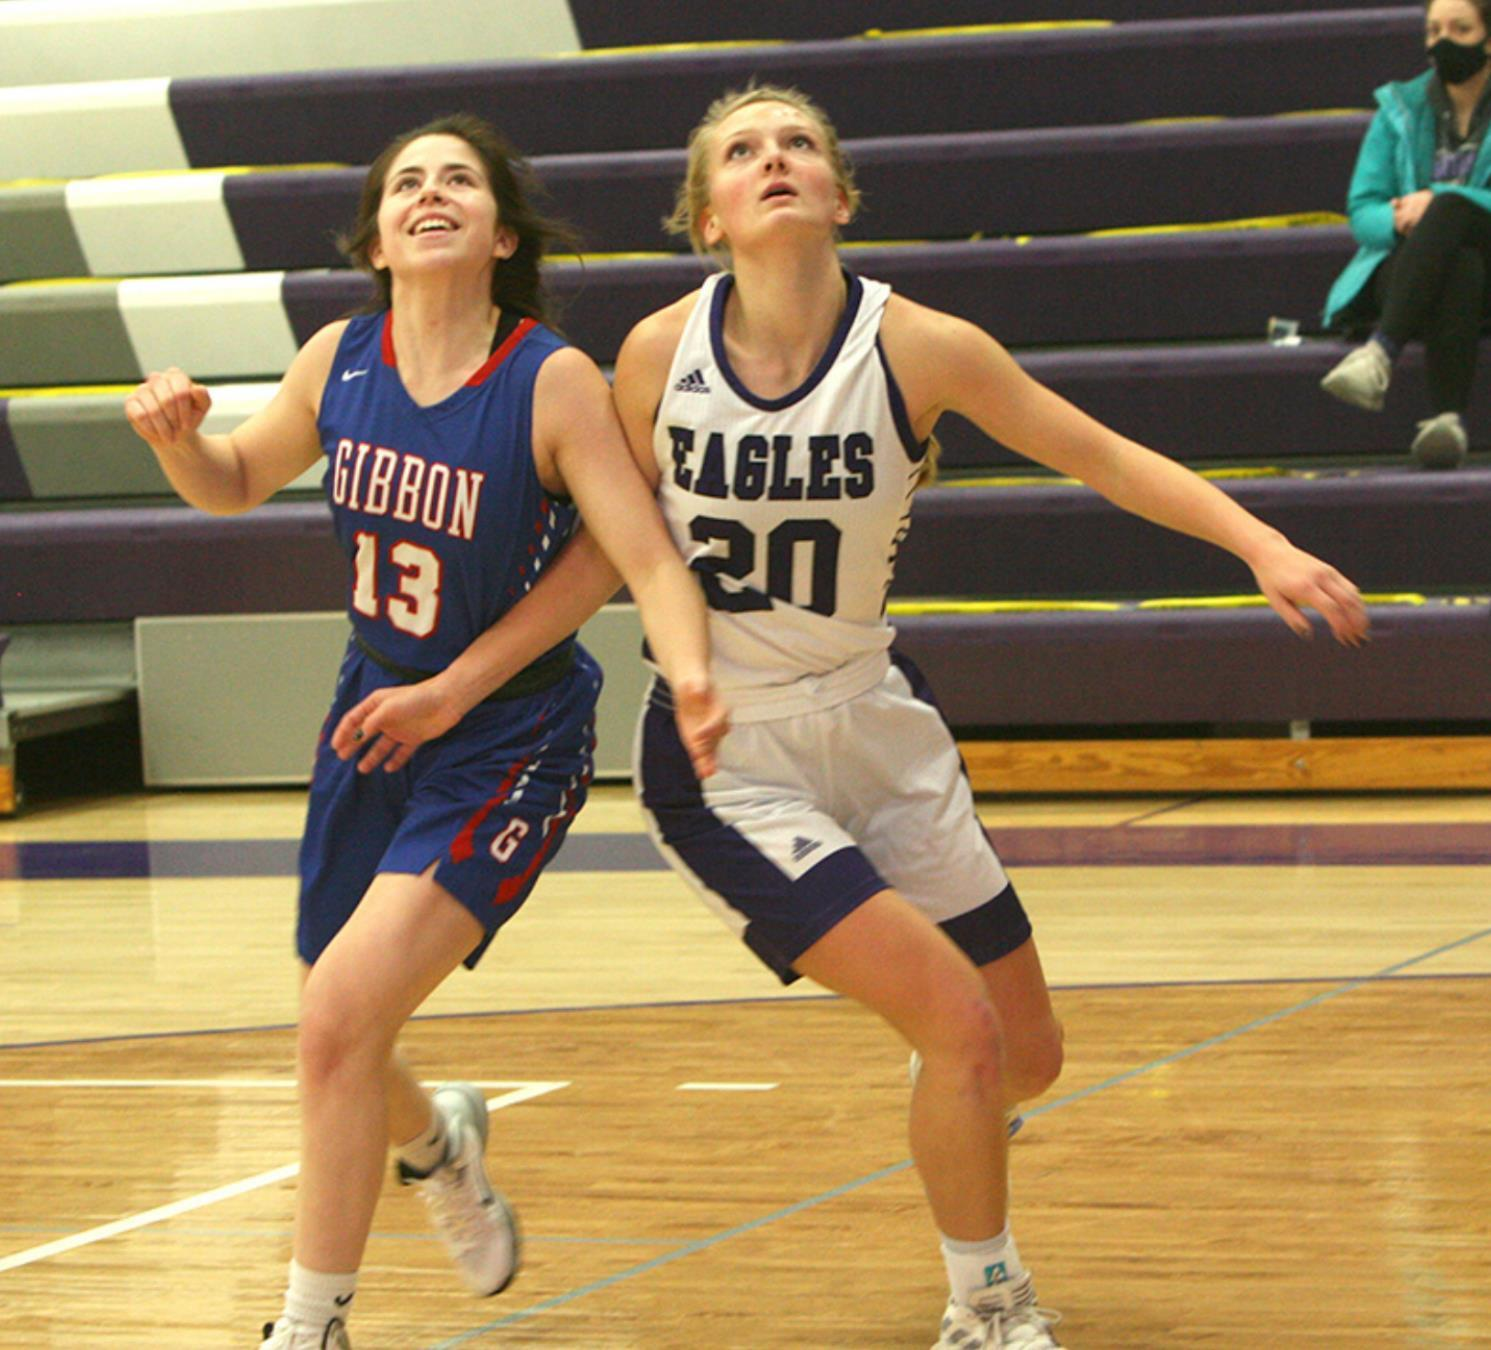 Gibbon's Desire Nunez (#13) and Wood River's Macie Peters jockey for position for a rebound in the renewal of the friendly Highway 30 rivalry on December 19. The Lady Eagles emerged from the contest with a decisive 62-36 victory. (–photo by Lynn McB